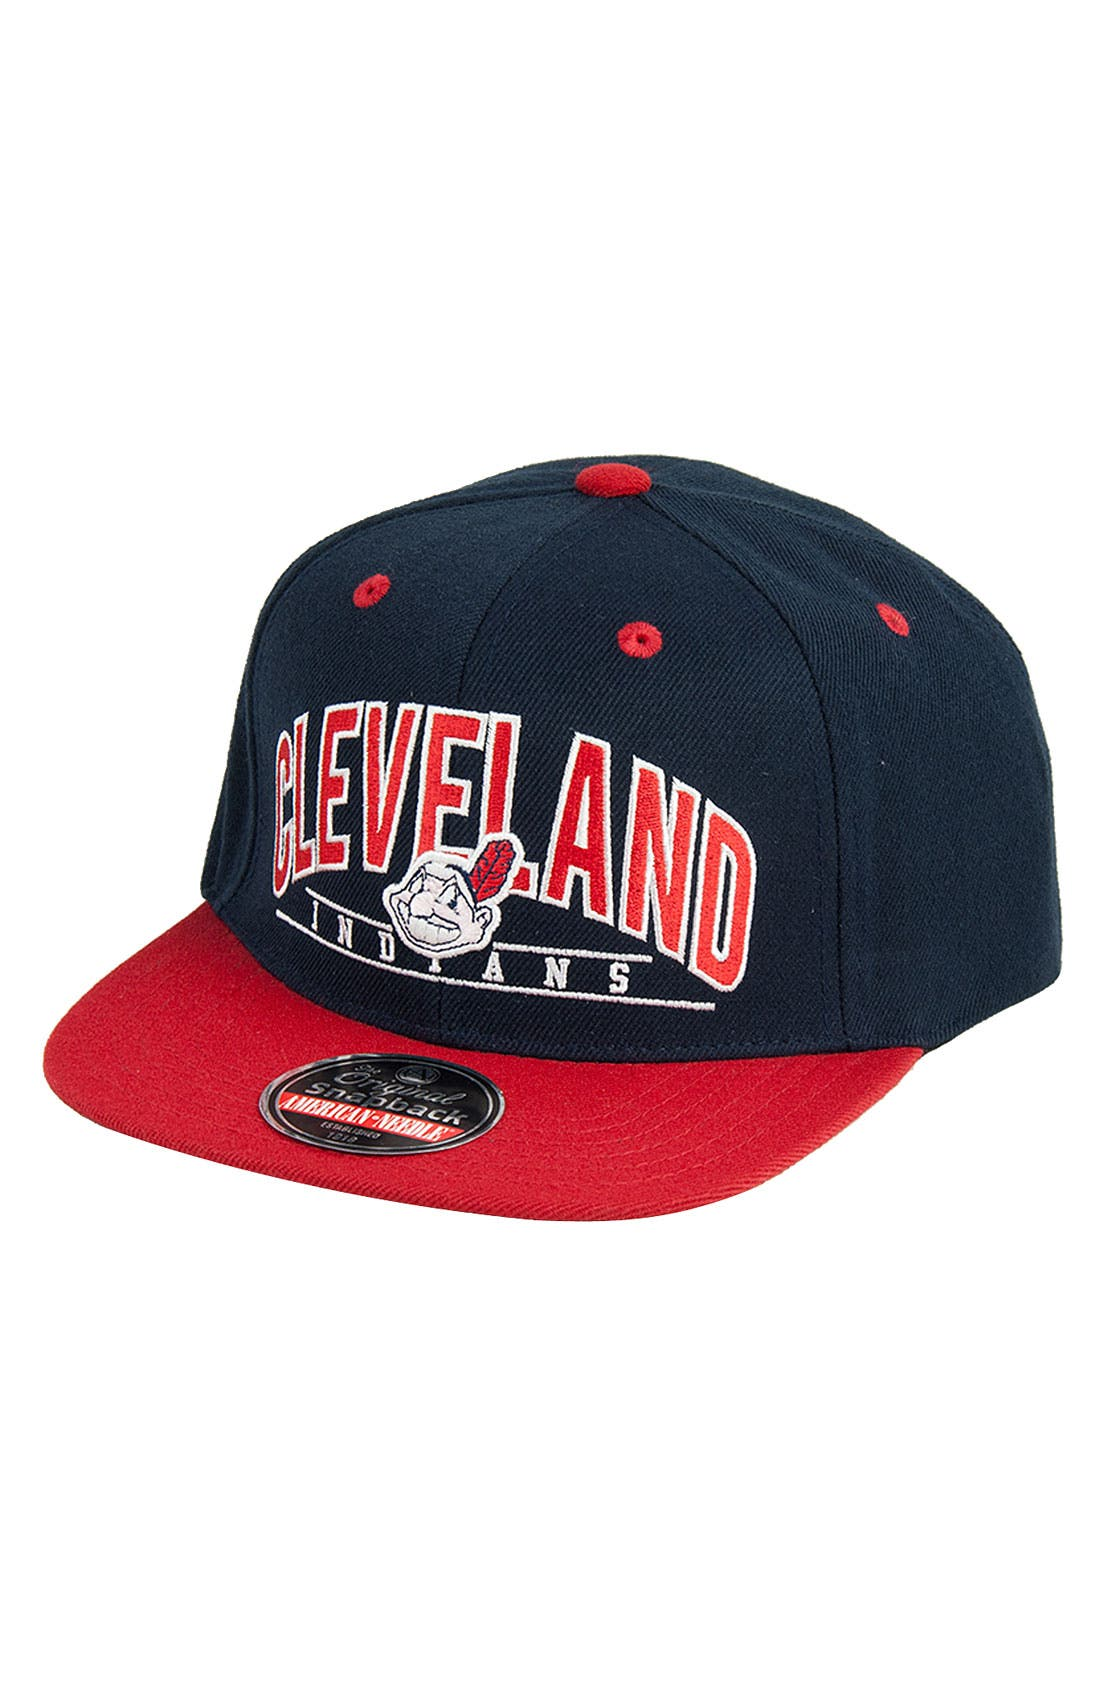 Alternate Image 1 Selected - American Needle 'Arched Indians' Snapback Baseball Cap